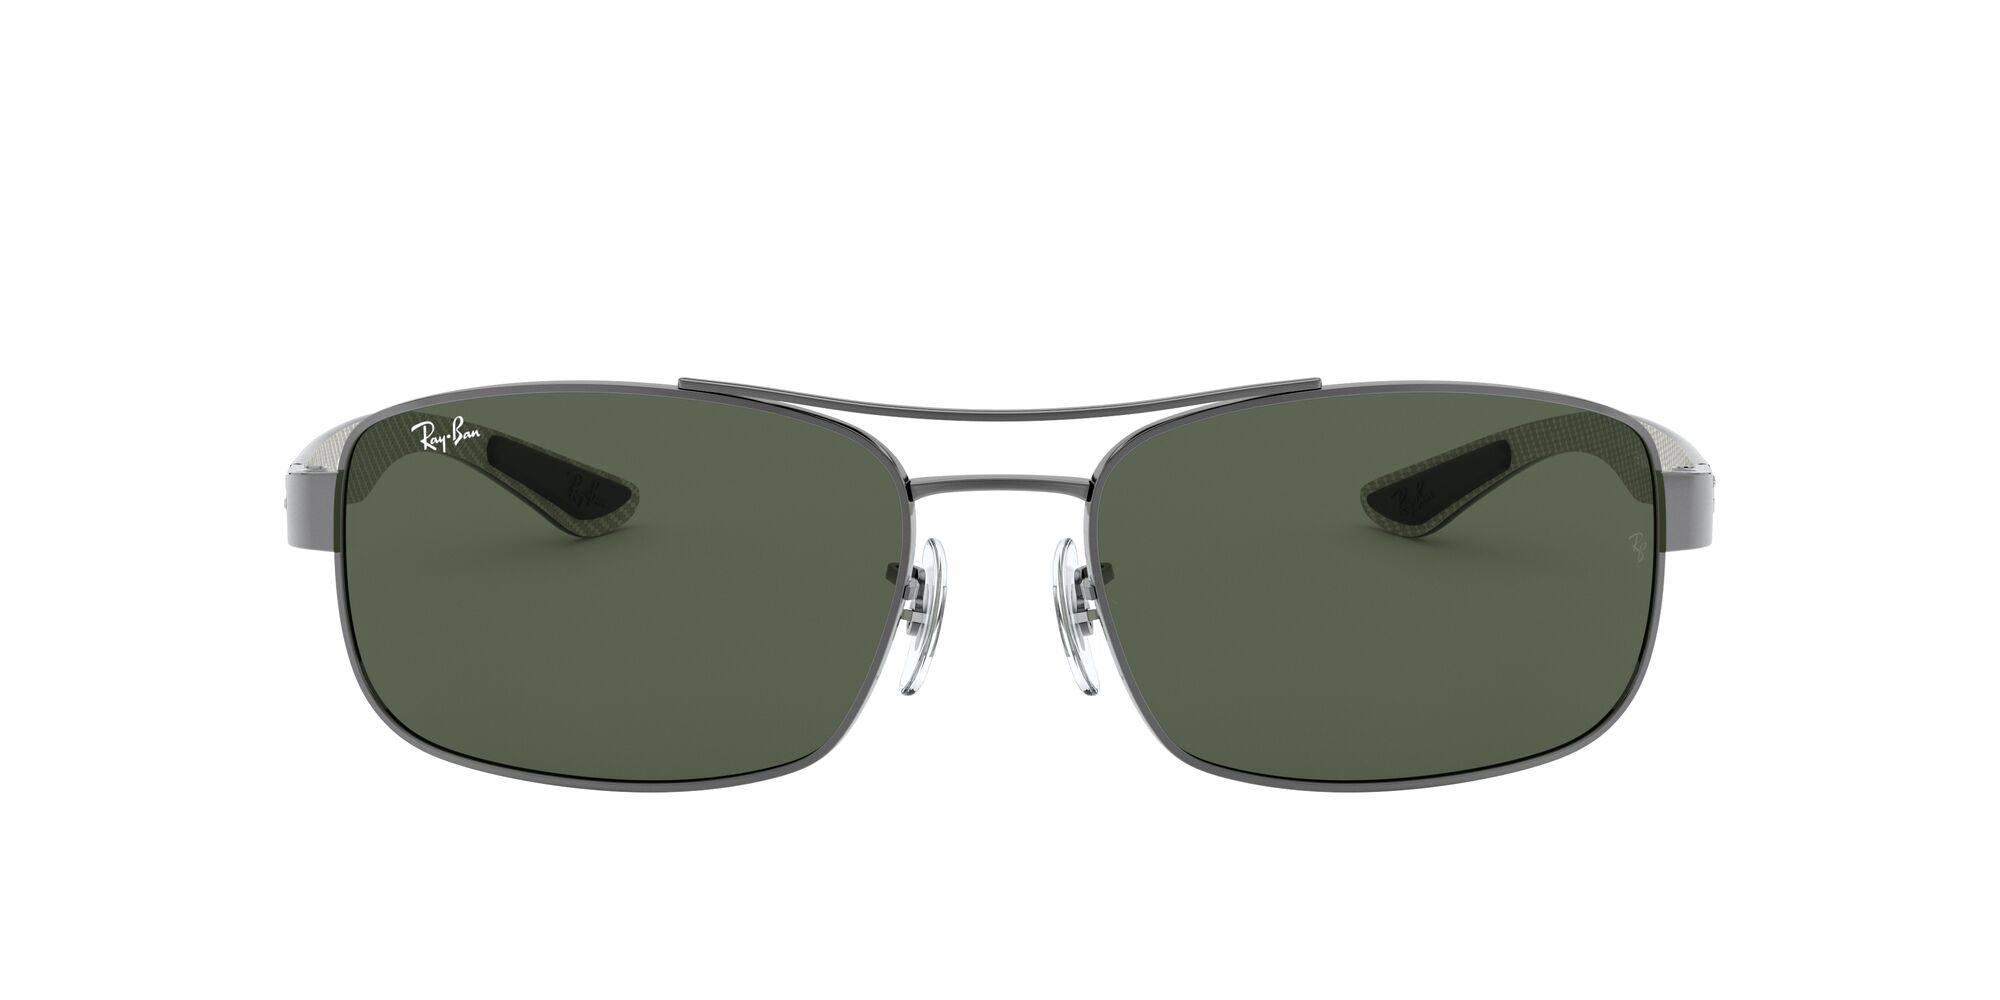 Front Ray-Ban Ray-Ban 0RB8316 004 62/18 Grijs/Groen